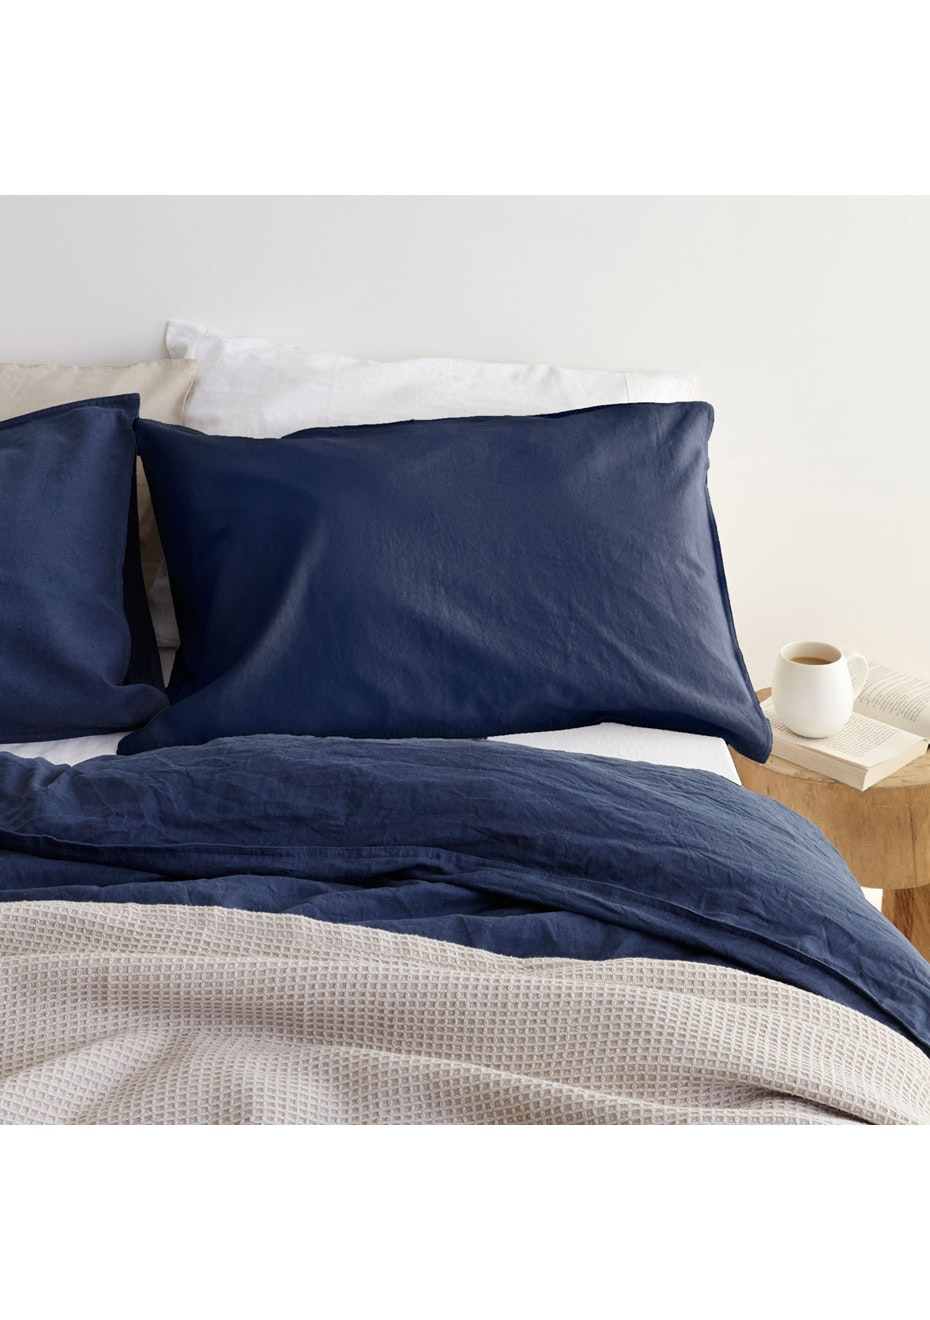 Canningvale - Sogno Linen Cotton Duvet Cover Set Indigo Blue Queen Bed